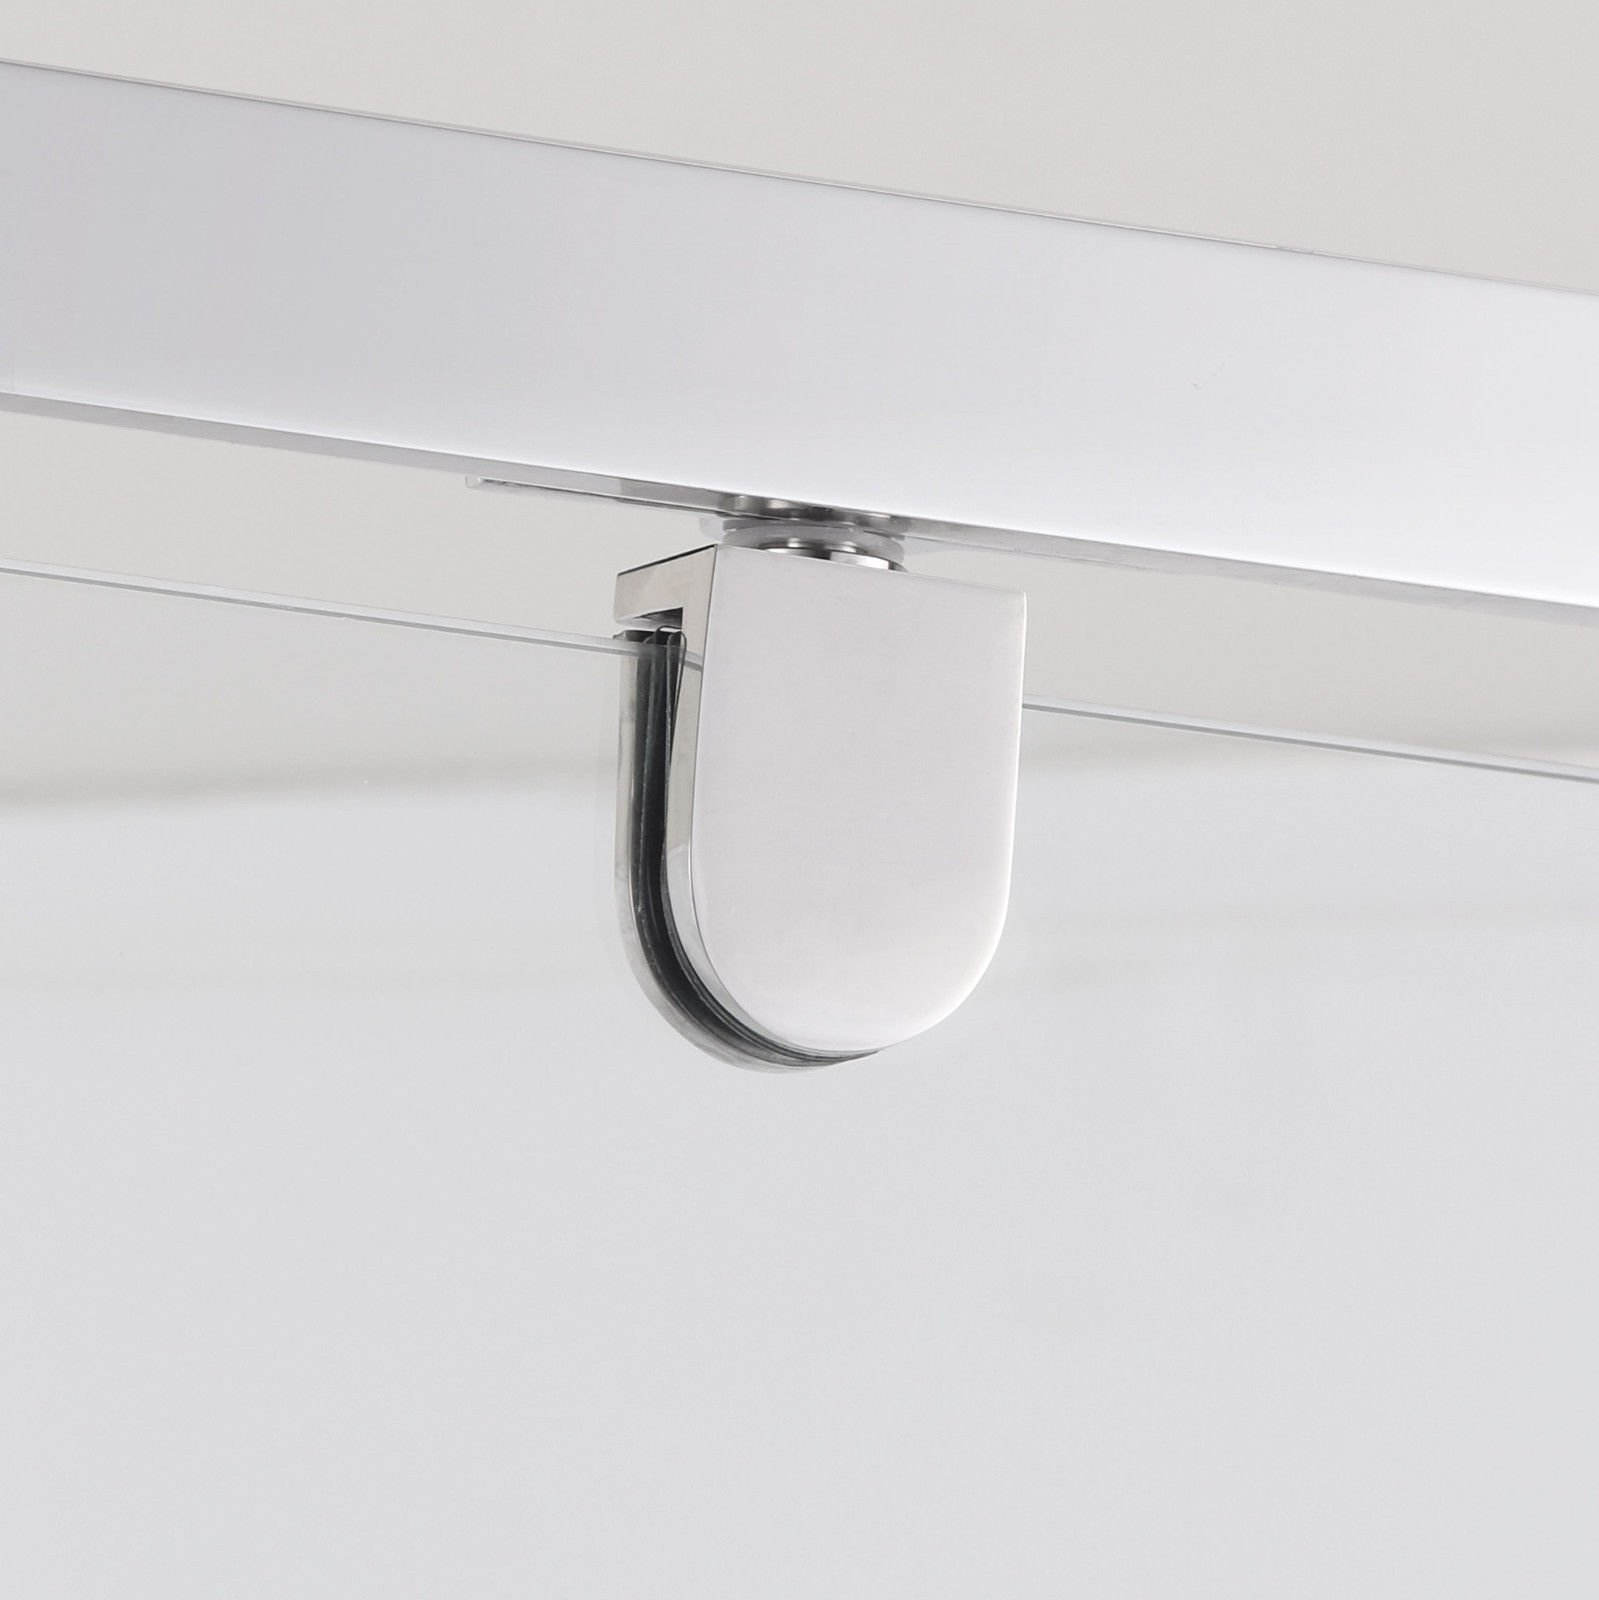 SUNNY SHOWER A33, Semi-frameless Neo-Angle Corner Shower Doors, Fit to 36 3/5'' W x 36 3/5'' D x 71 4/5'' H, 1/4'' Clear Glass, Chrome Finish- Back-wall & Shower Base Sold Separately by SUNNY SHOWER (Image #3)